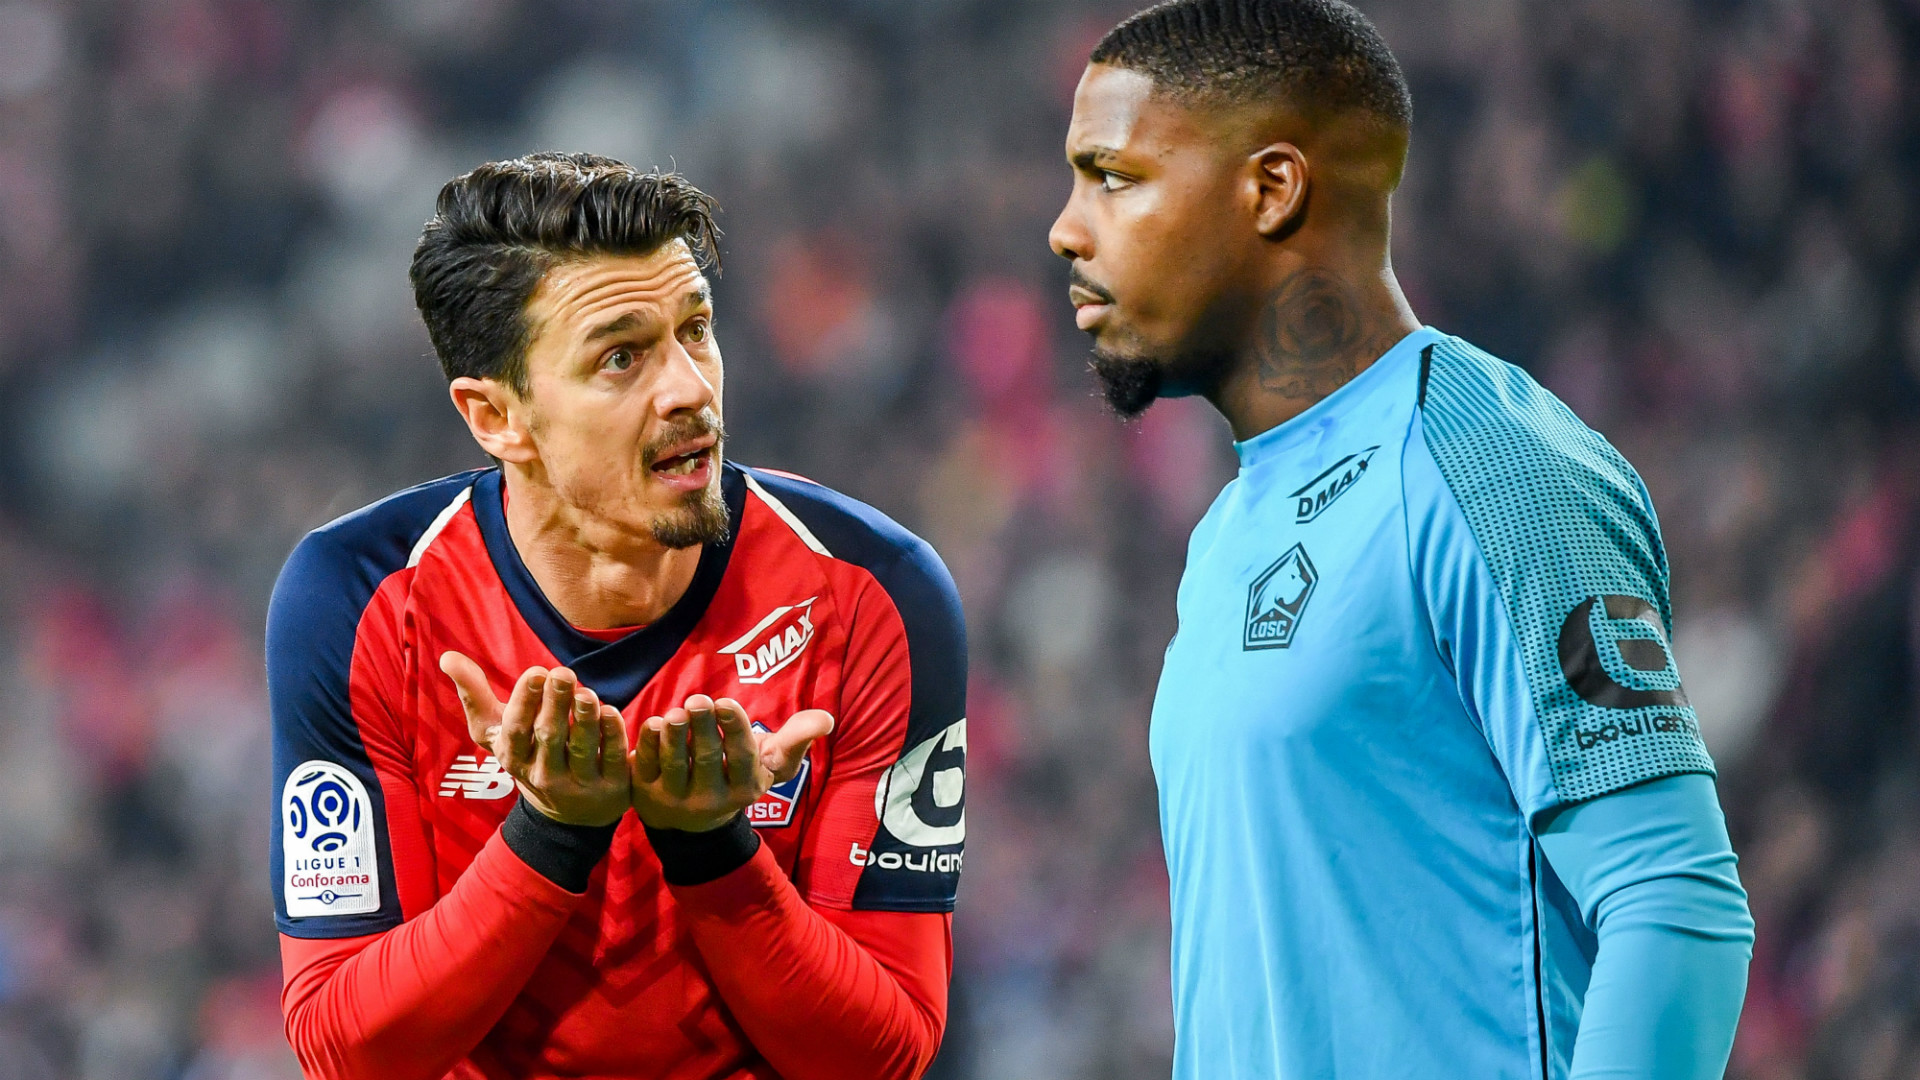 Lille vs. Paris Saint-Germain - Football Match Report